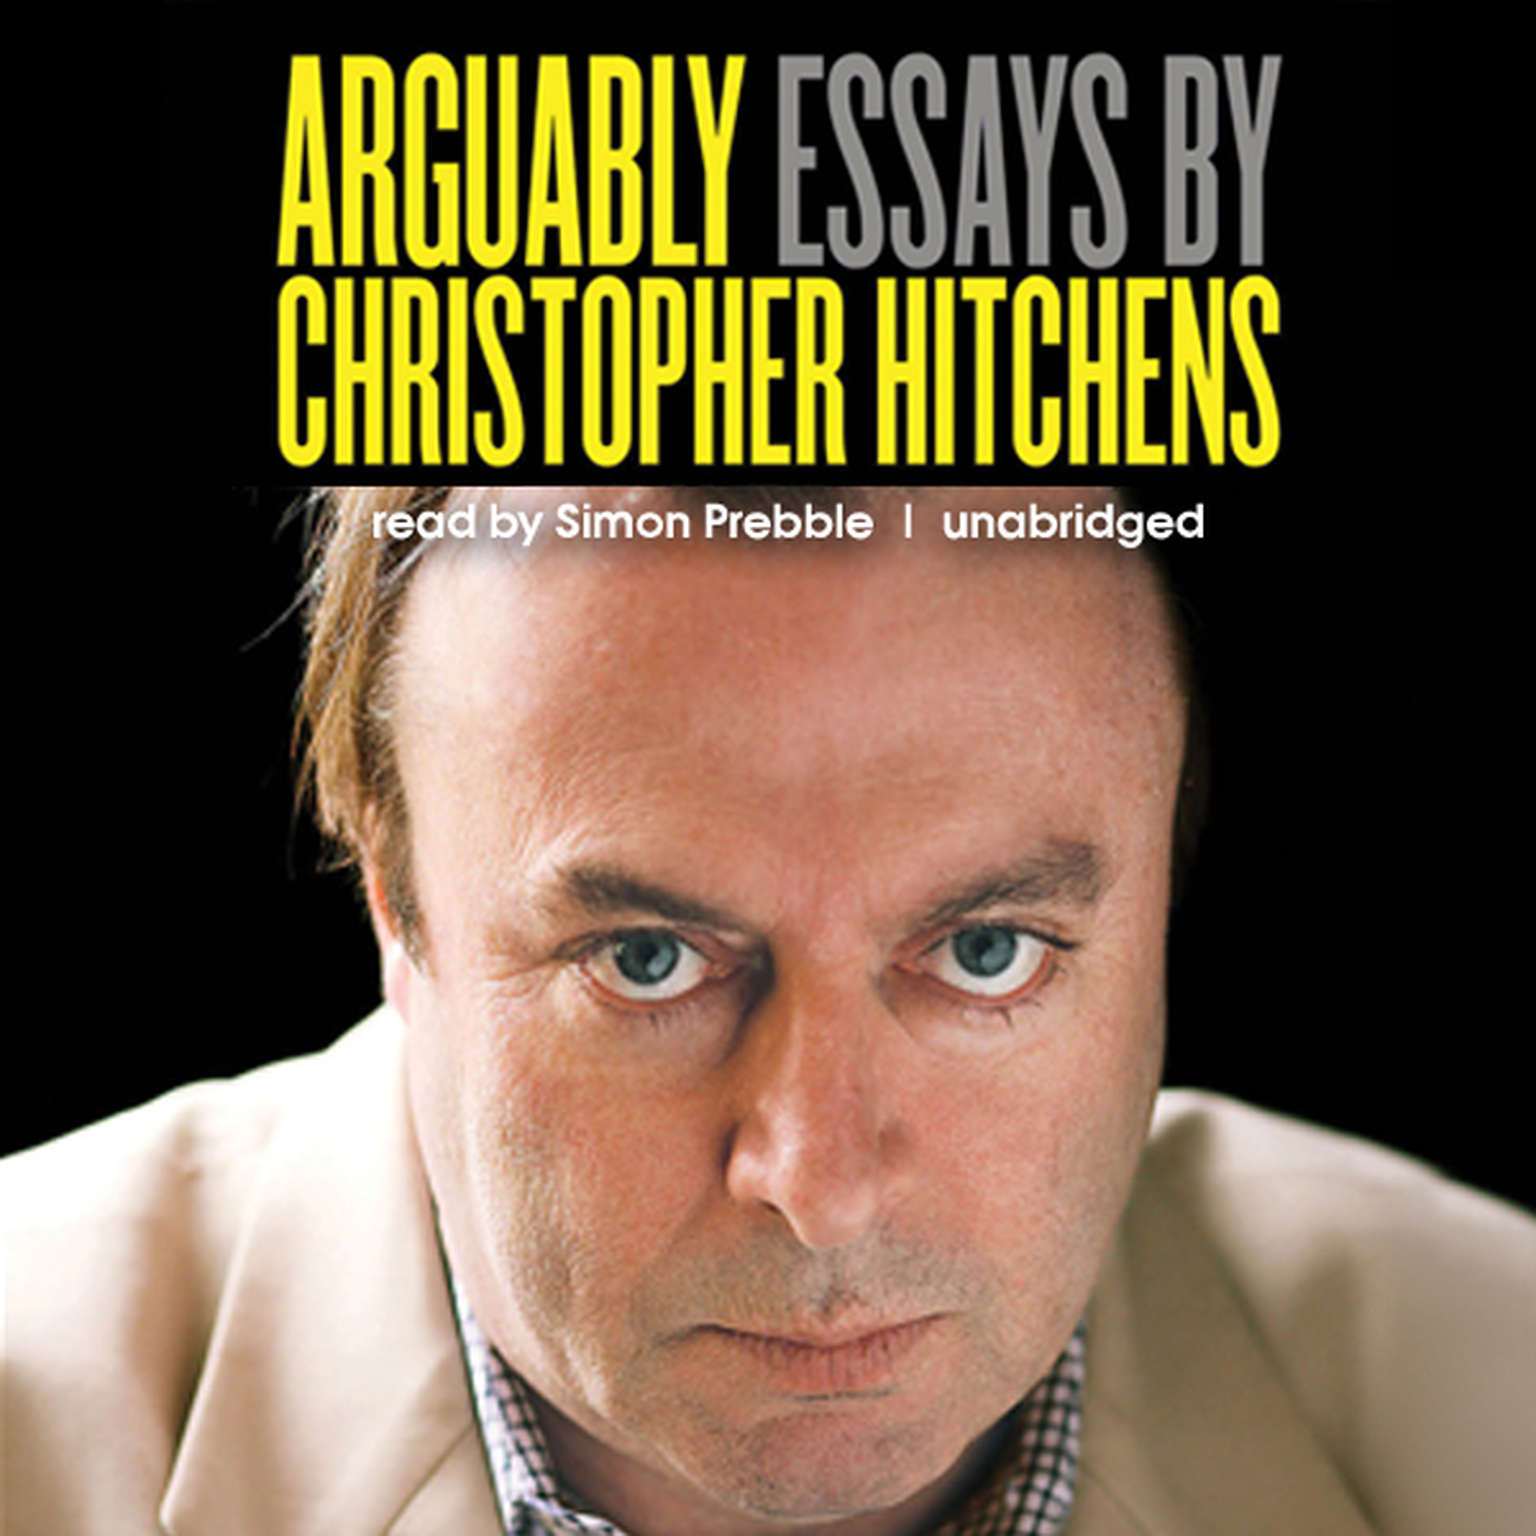 Best essays by christopher hitchens